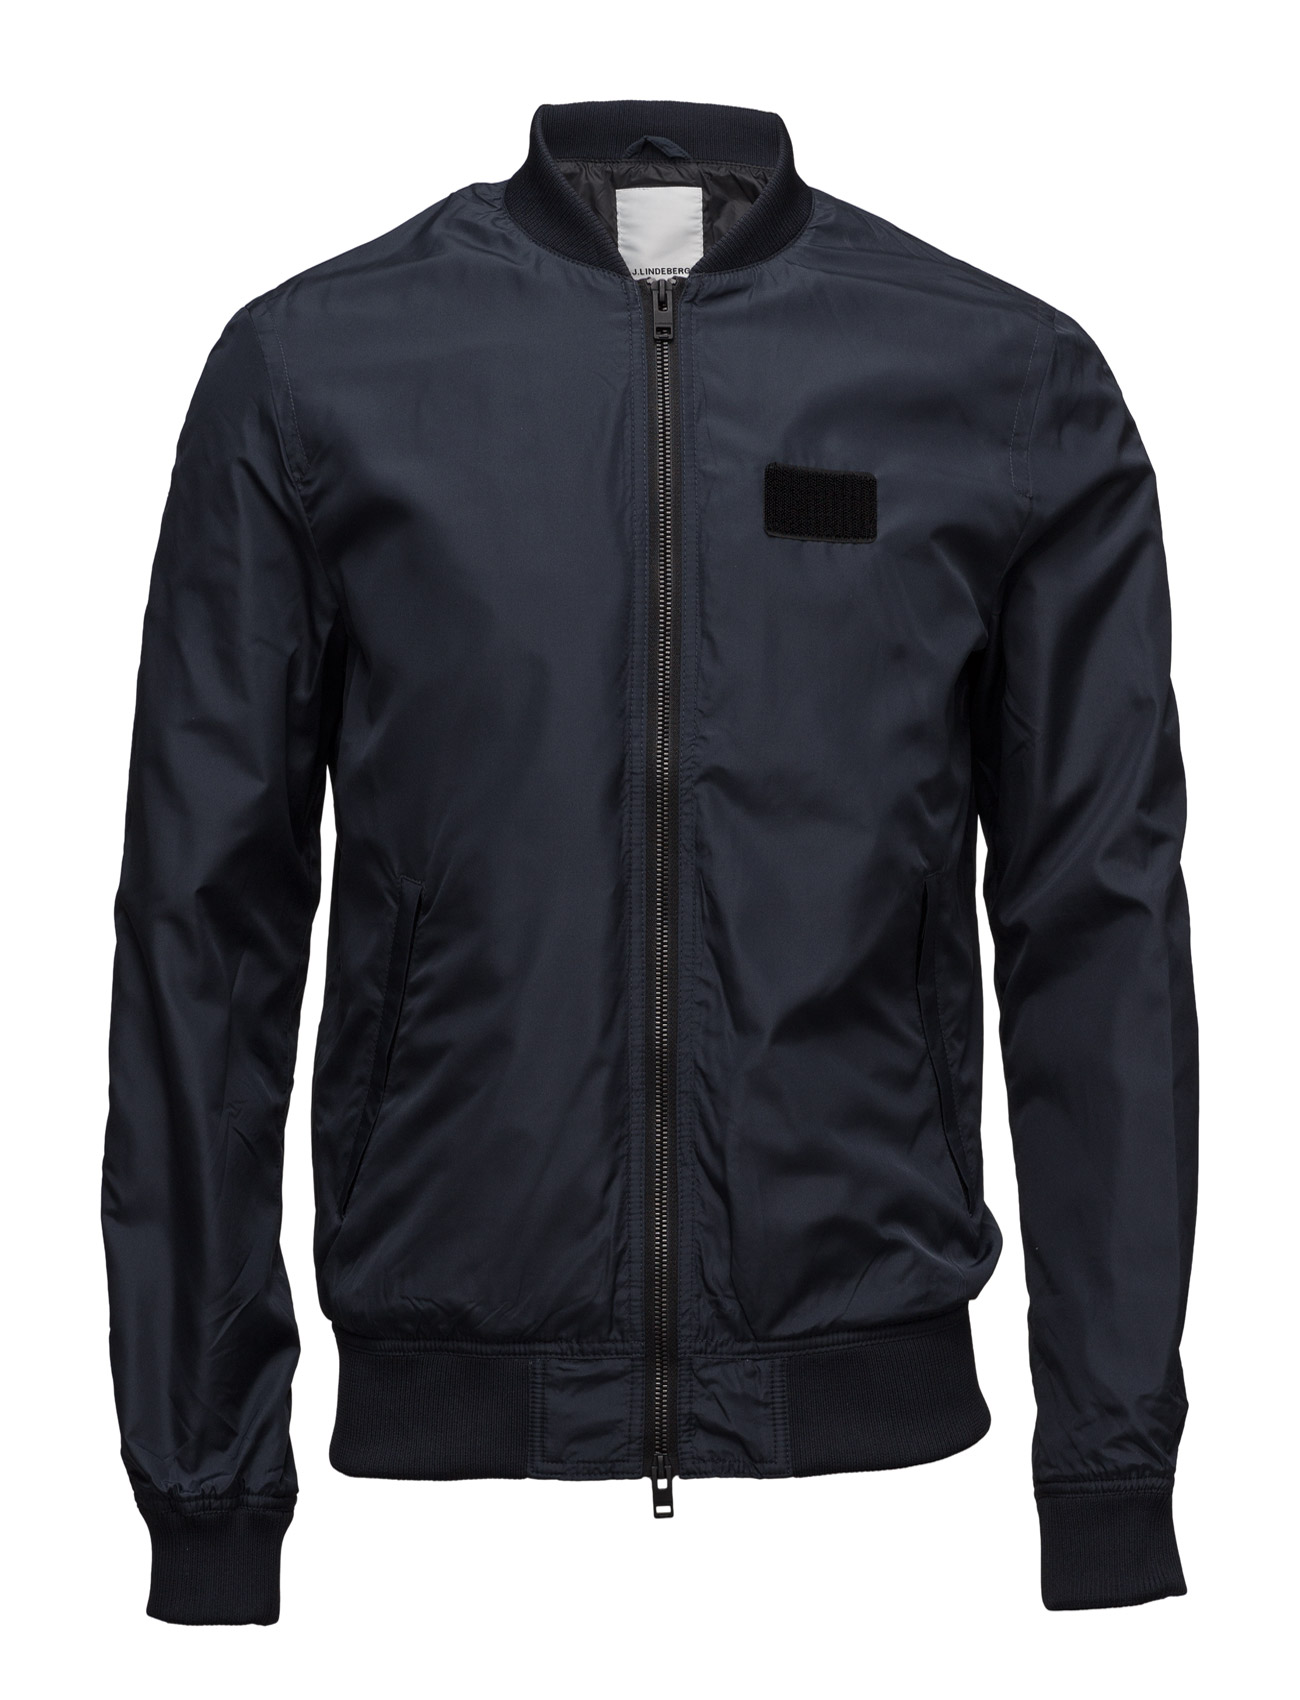 Thom 71 Gravity Poly J. Lindeberg Jackets